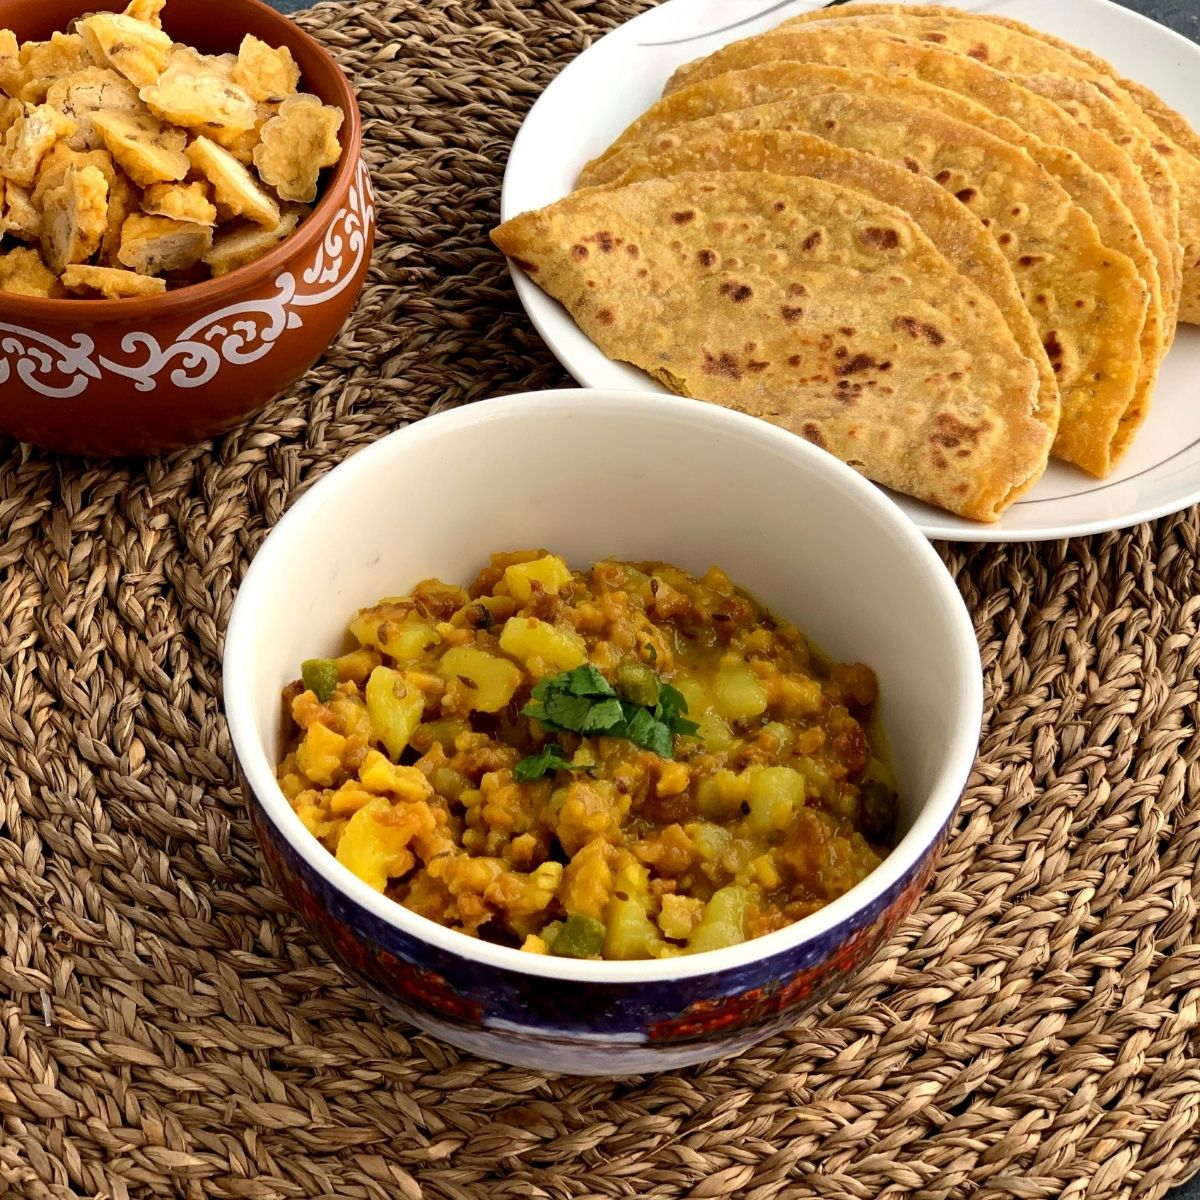 Mangodi Aloo ki Sabji is a lip-smacking sabji made using dried moong dal nuggets, potato and a few spices.